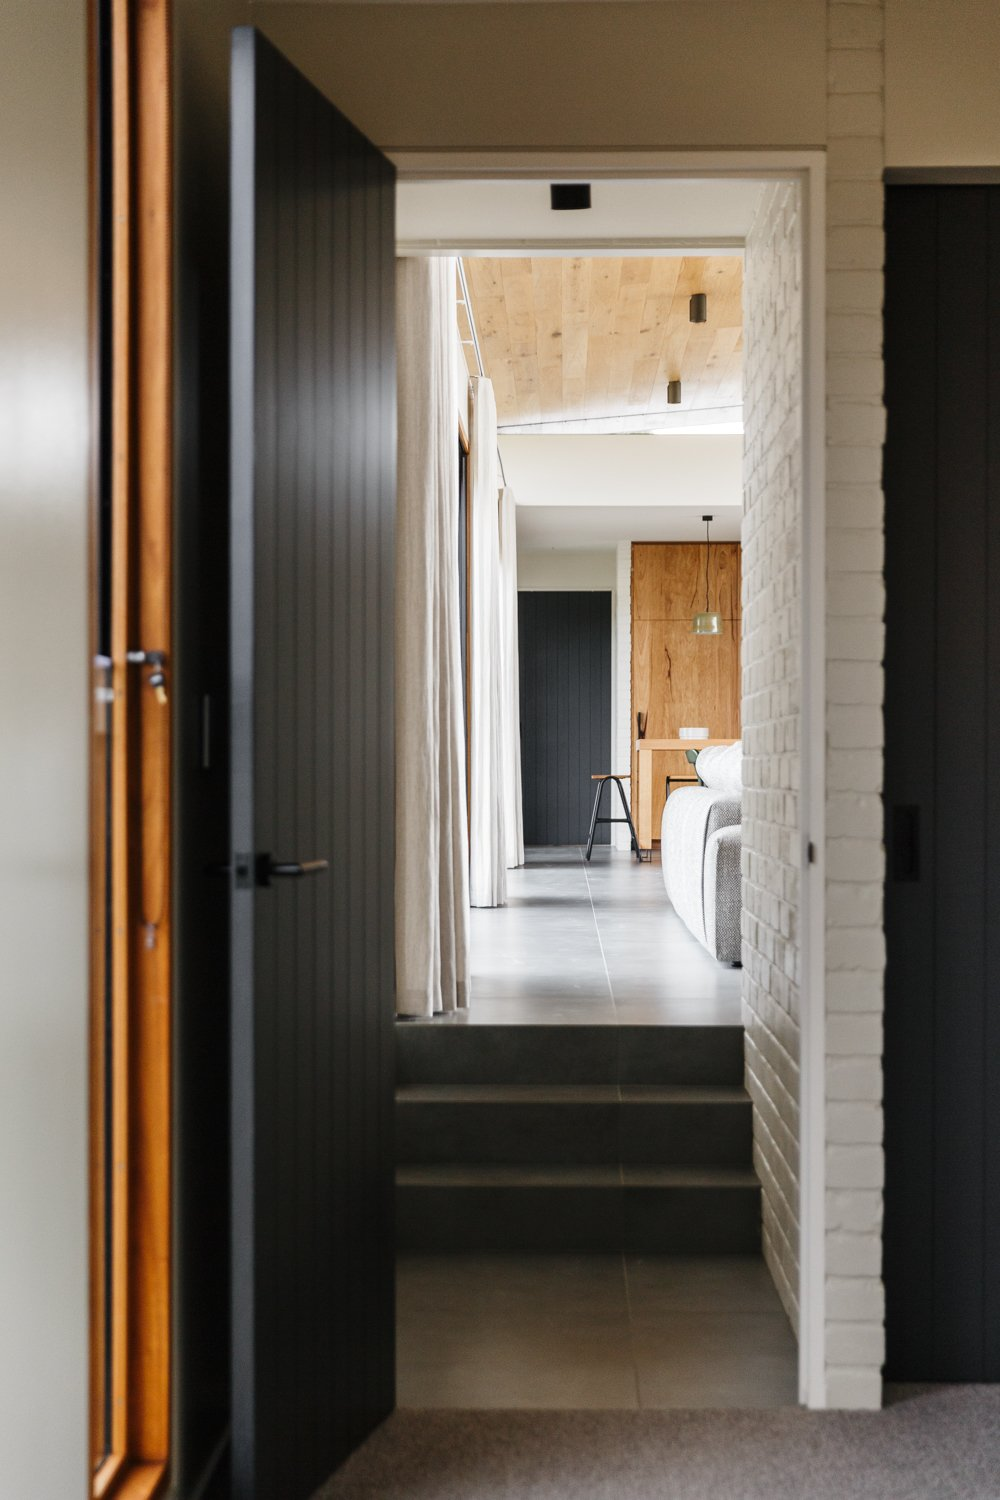 Hallway  Photo 6 of 11 in The Surrounding Countryside Inspires a Family Home in Australia's Adelaide Hills